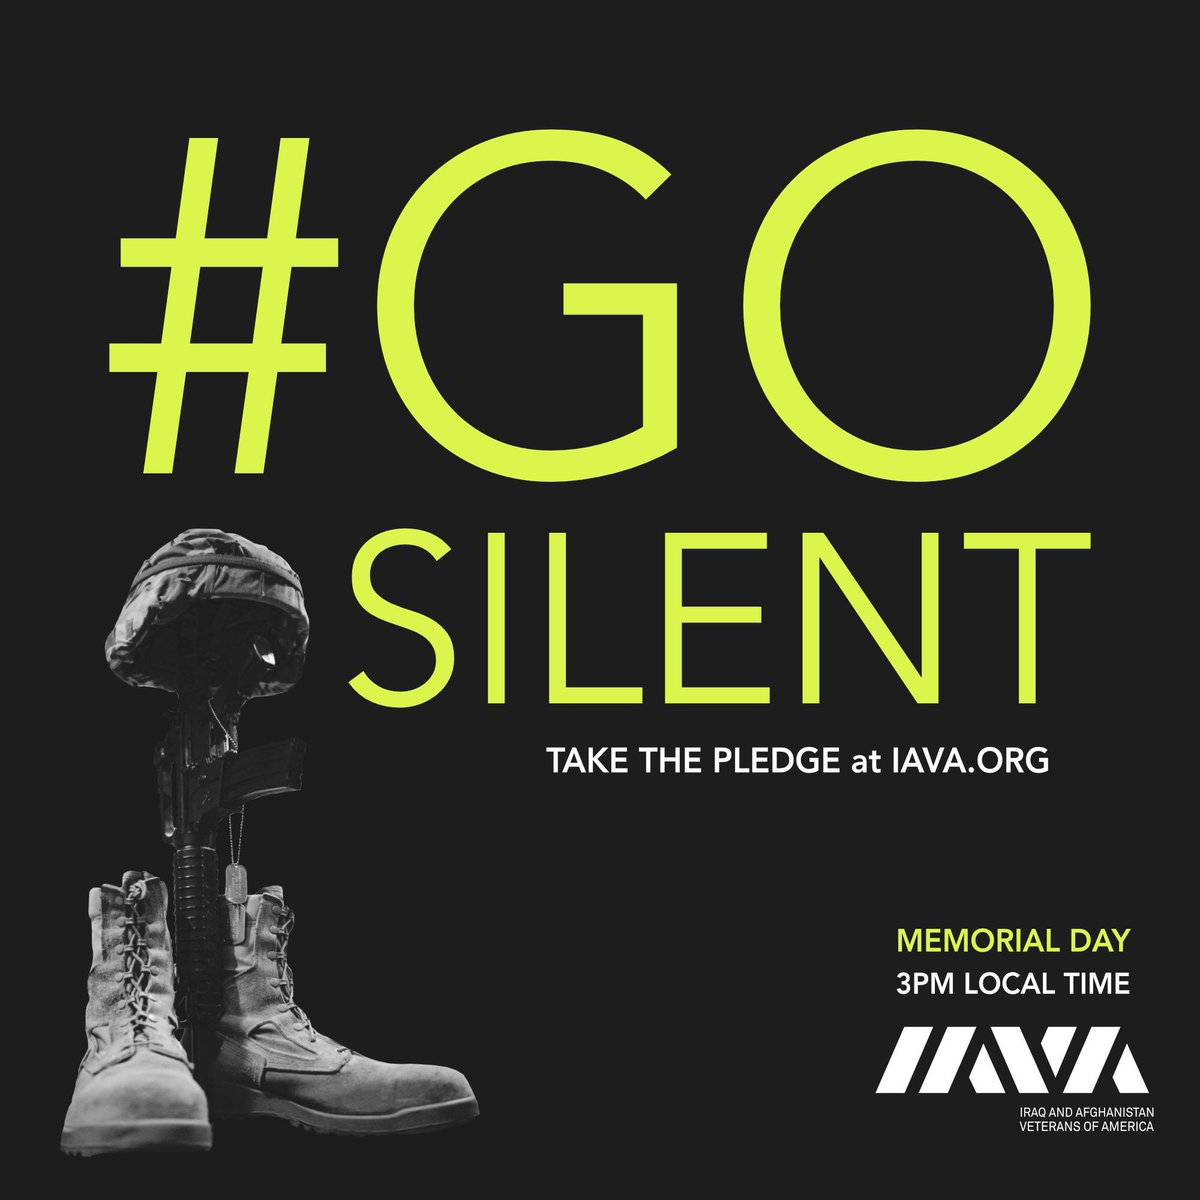 On this Memorial Day I pledge to #GoSilent https://t.co/8jQF7ZkUq1